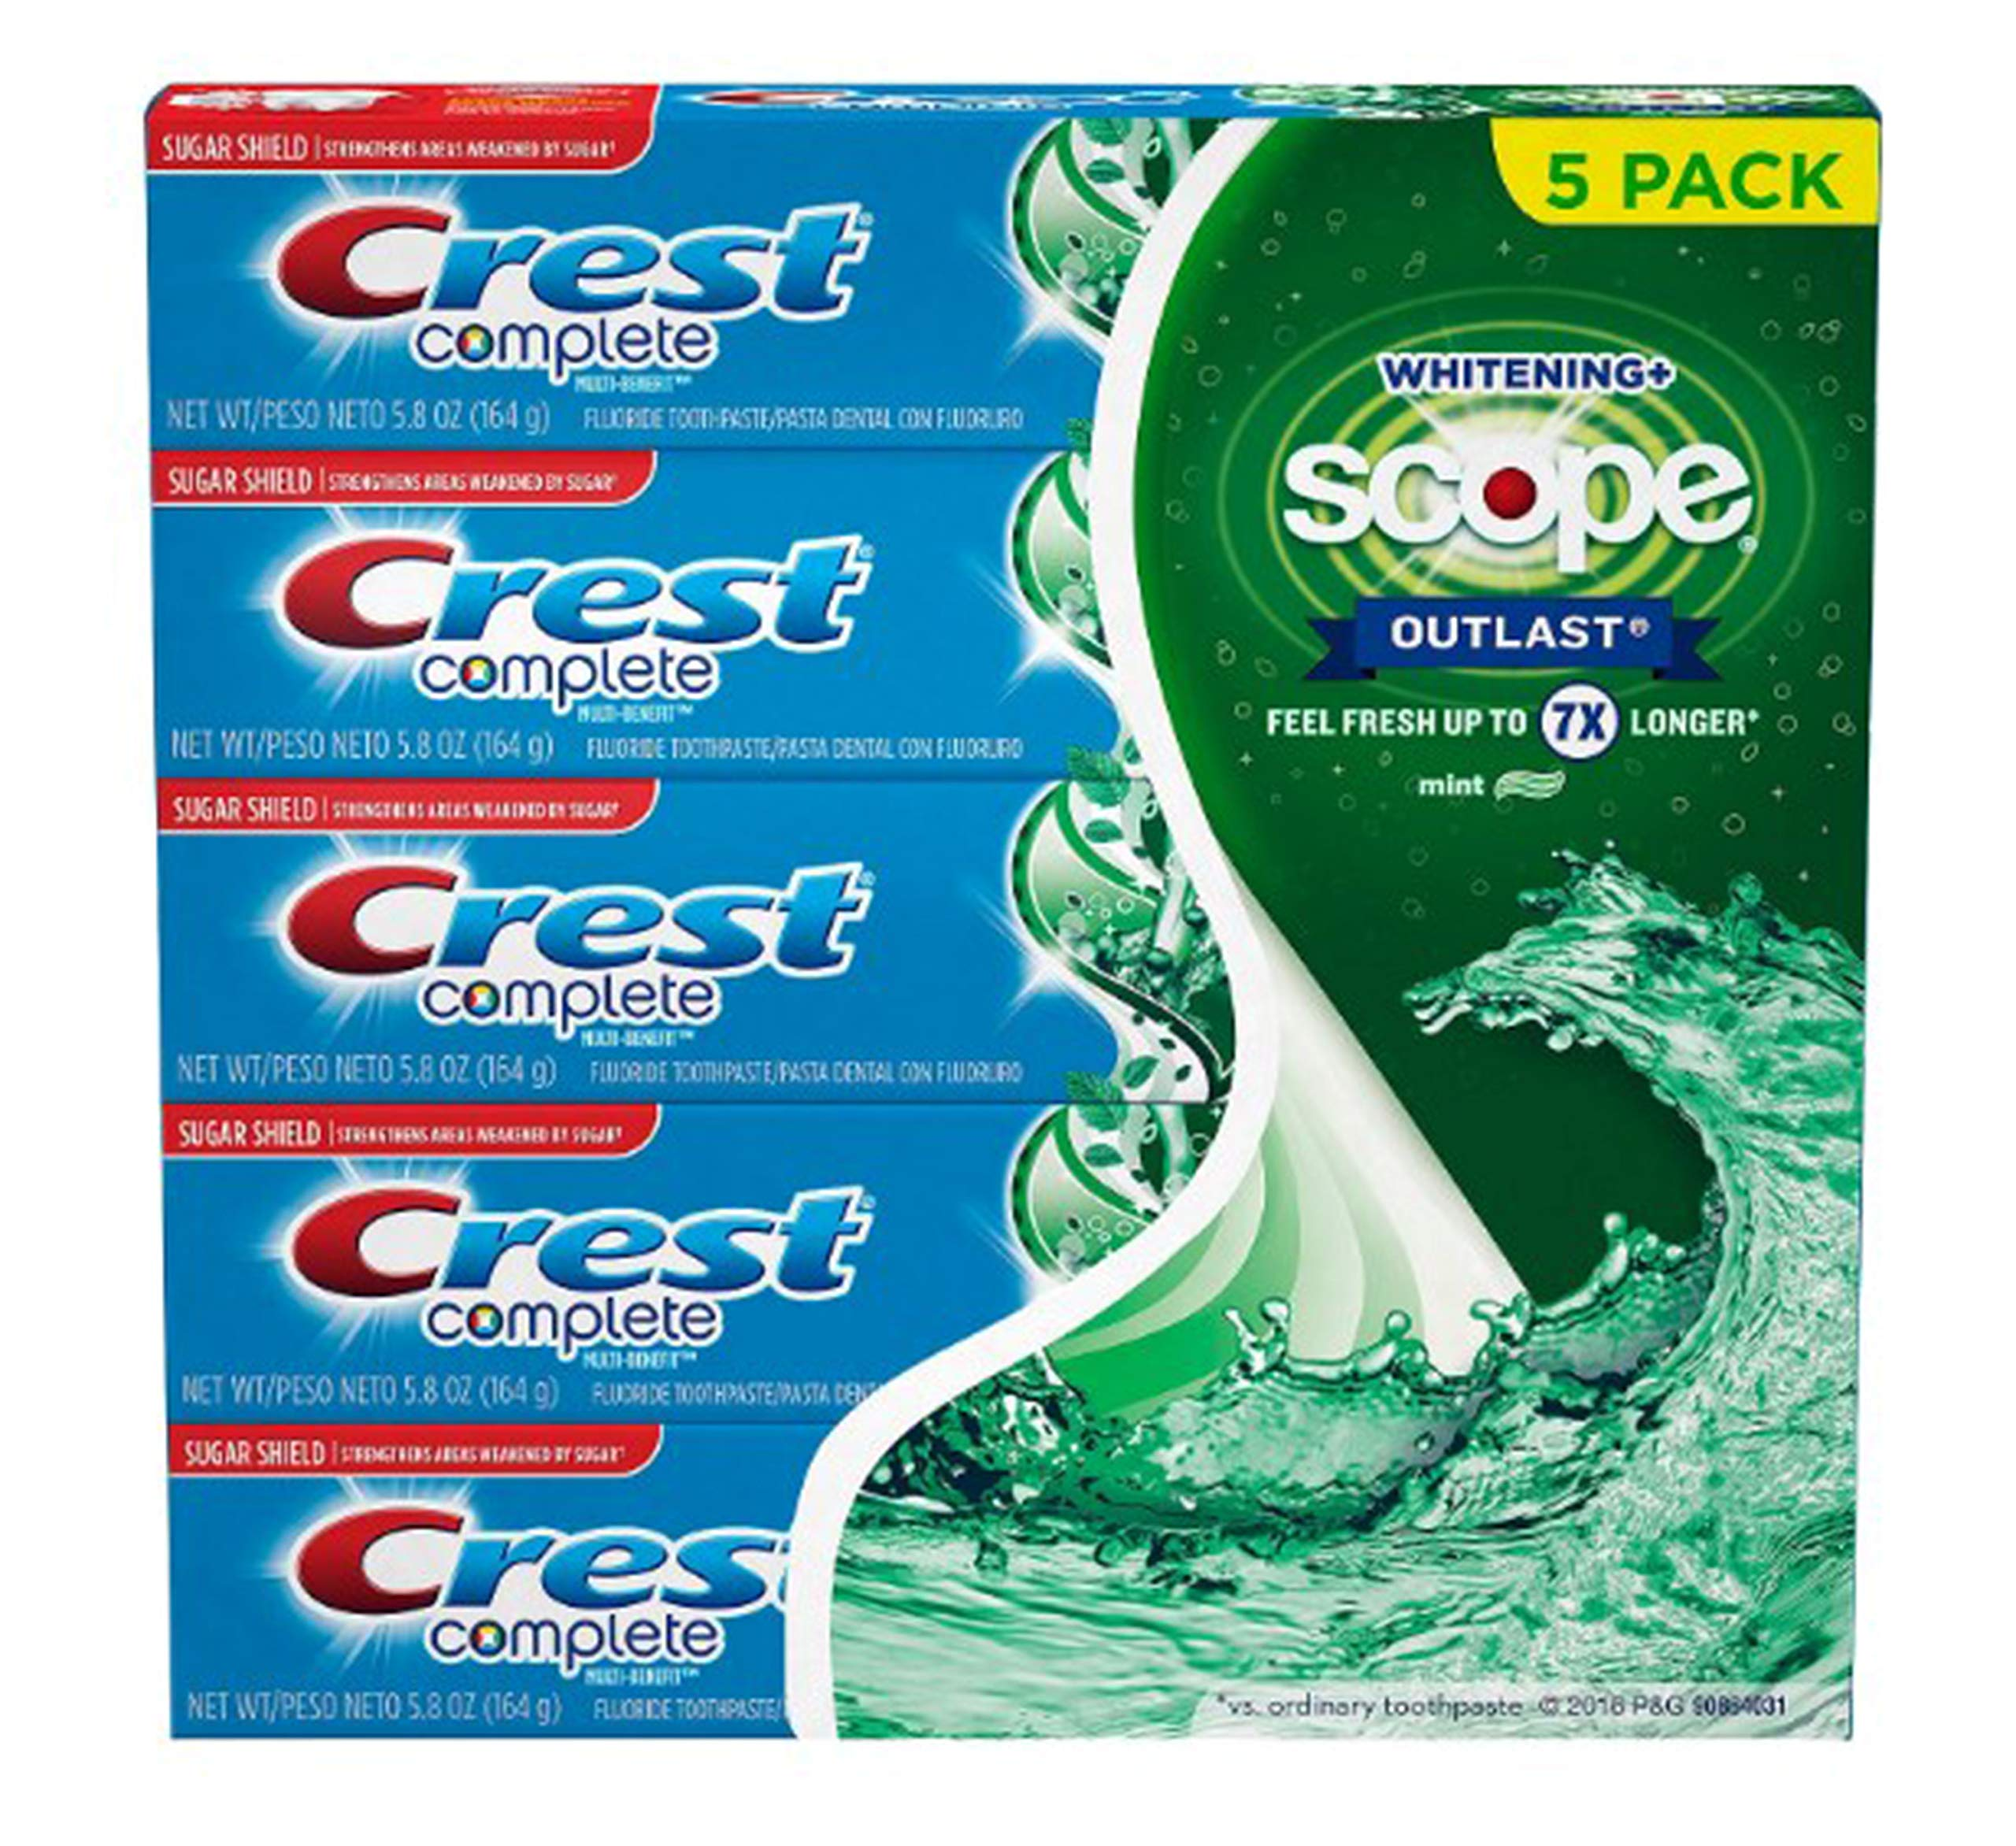 Crest Complete Whitening + Scope Toothpaste, Mint, 5.8 Ounce (5 Pack)